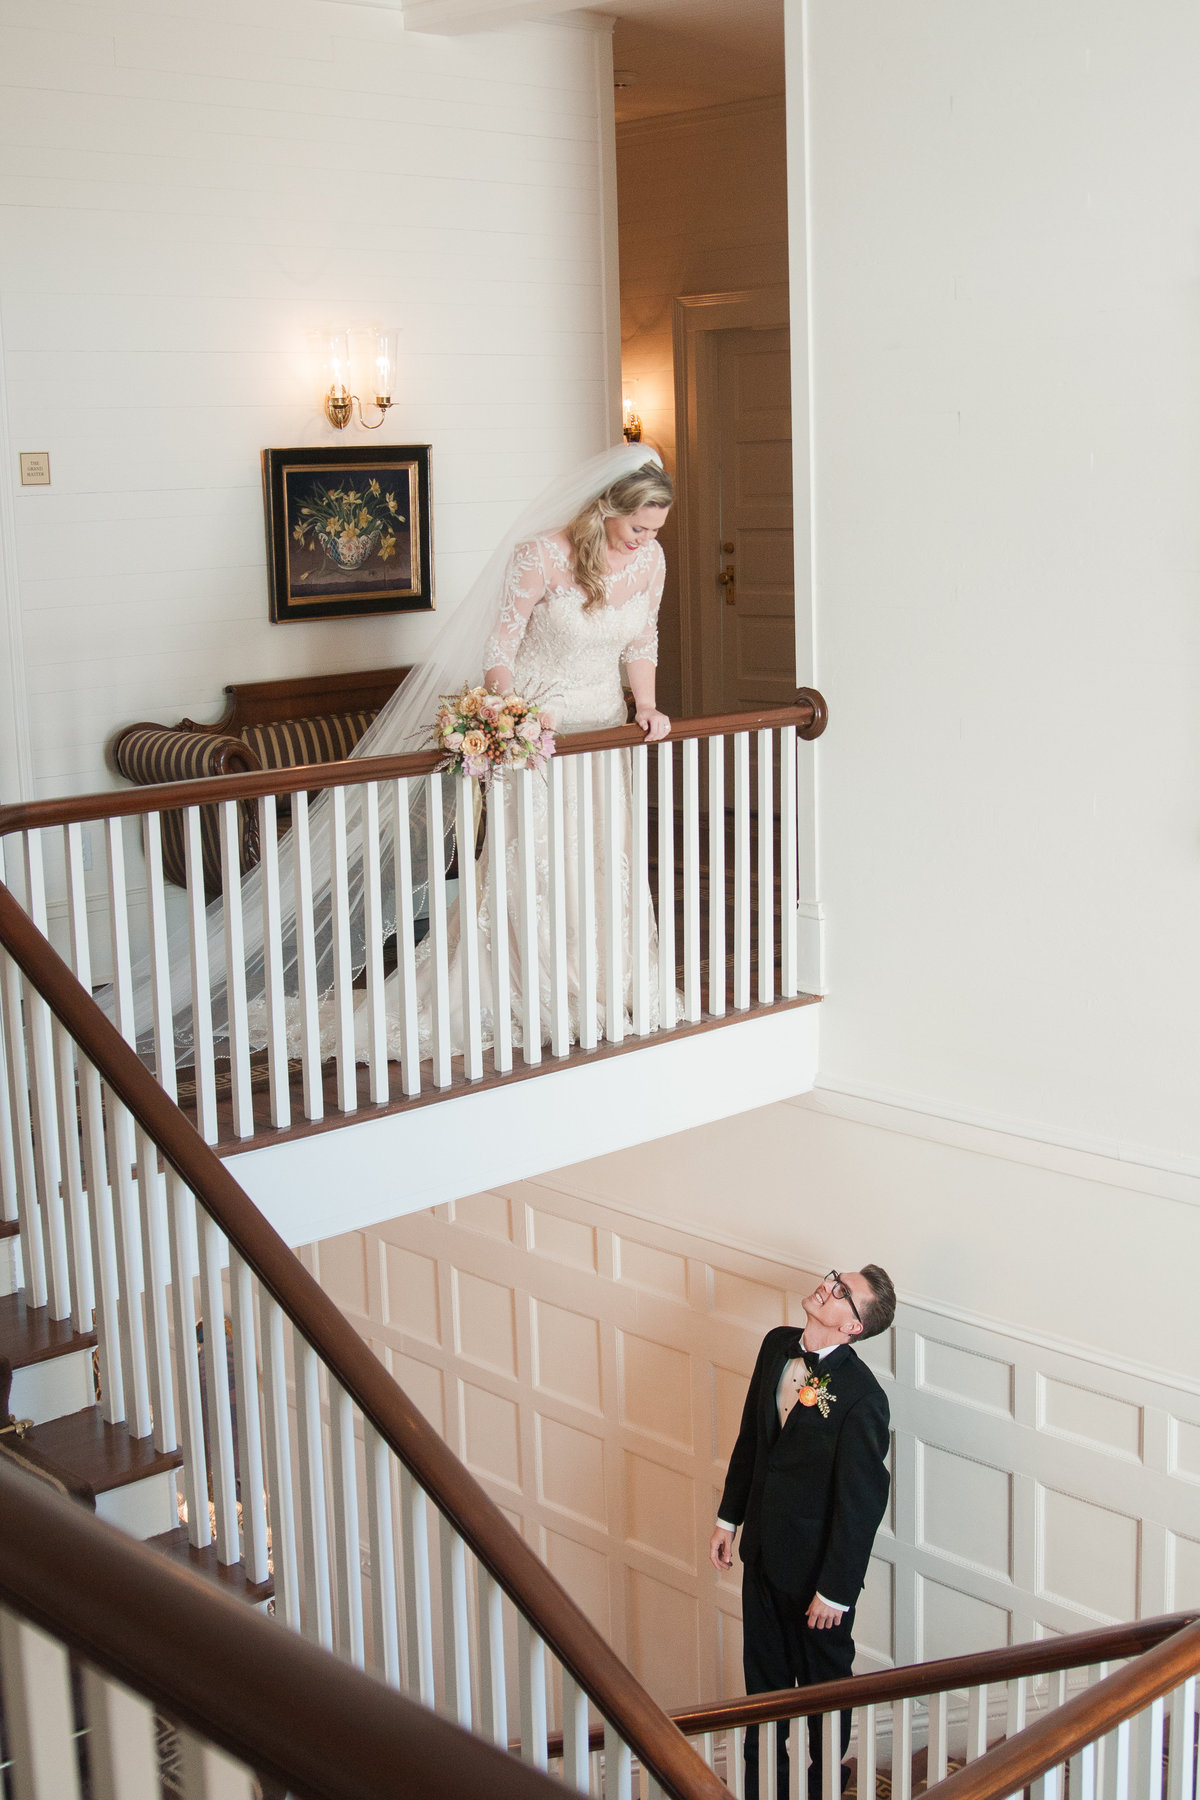 Glamourous wedding inspiration photographed at Westglow Mansion by Boone Wedding Photographer Wayfaring Wanderer. Westglow Mansion is a beautiful venue in Blowing Rock, NC.